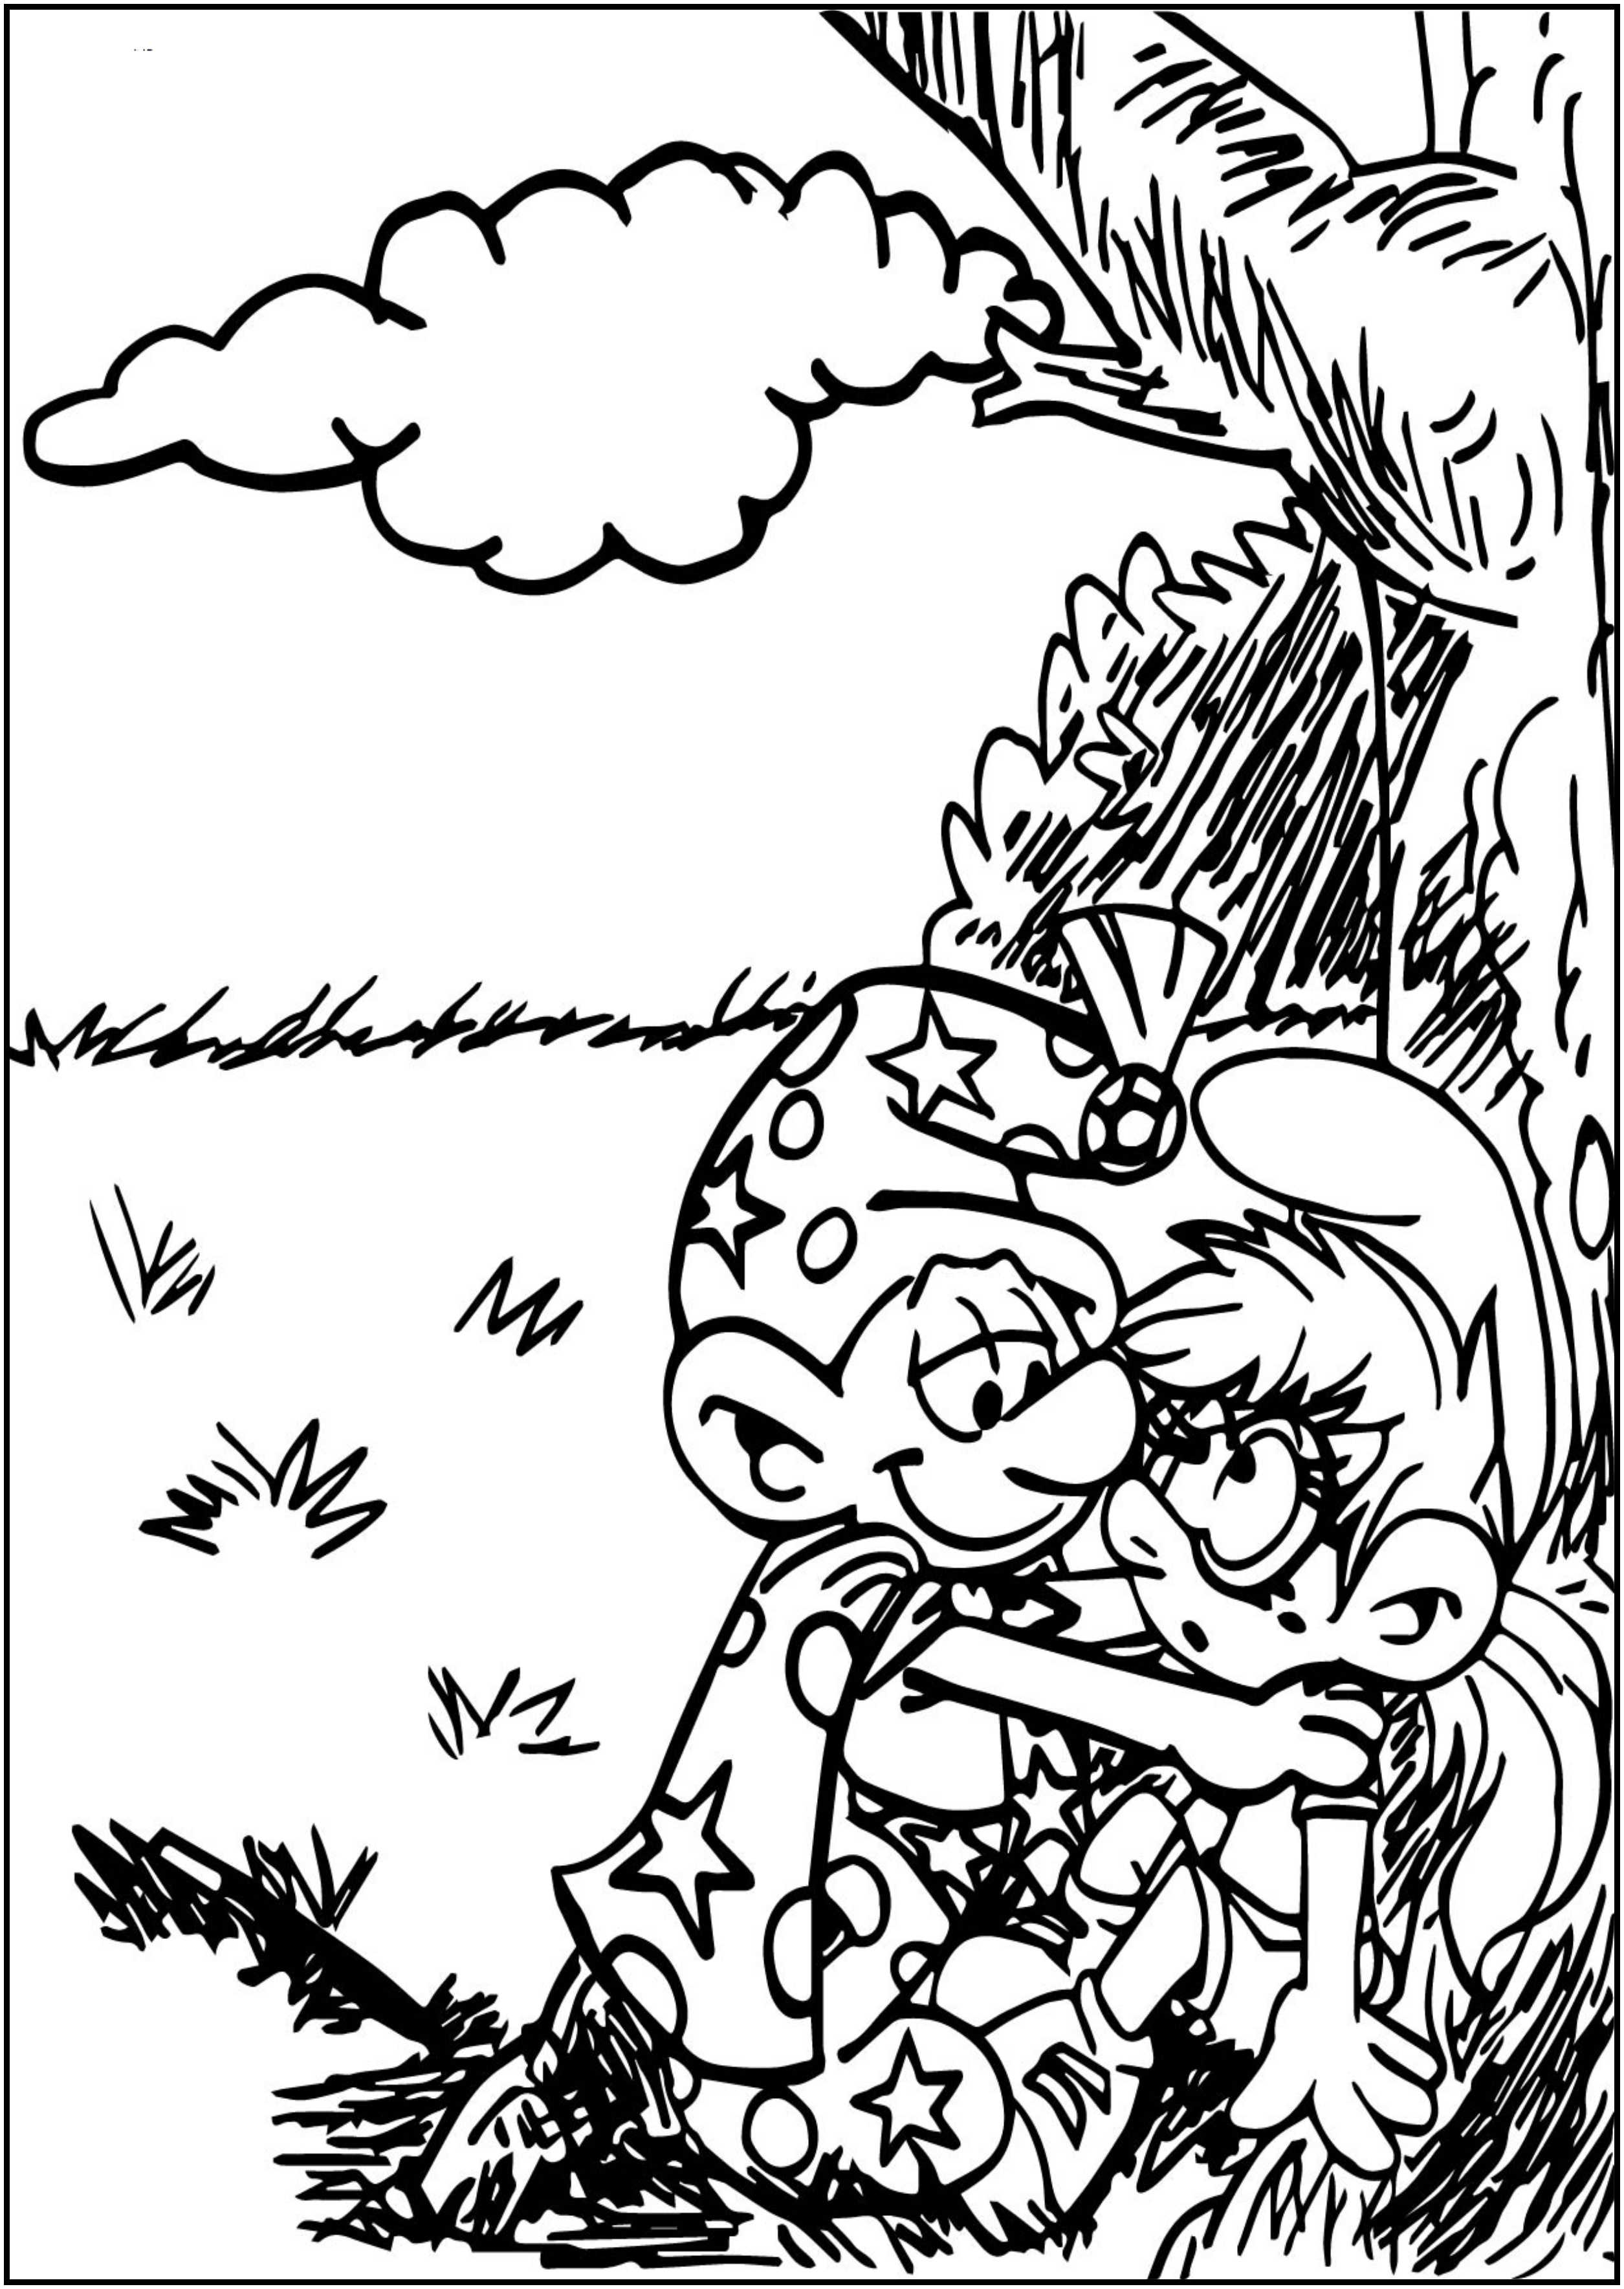 Commission For Bluehecate Fanny Alchemist Smurf Free Printable Coloring Page